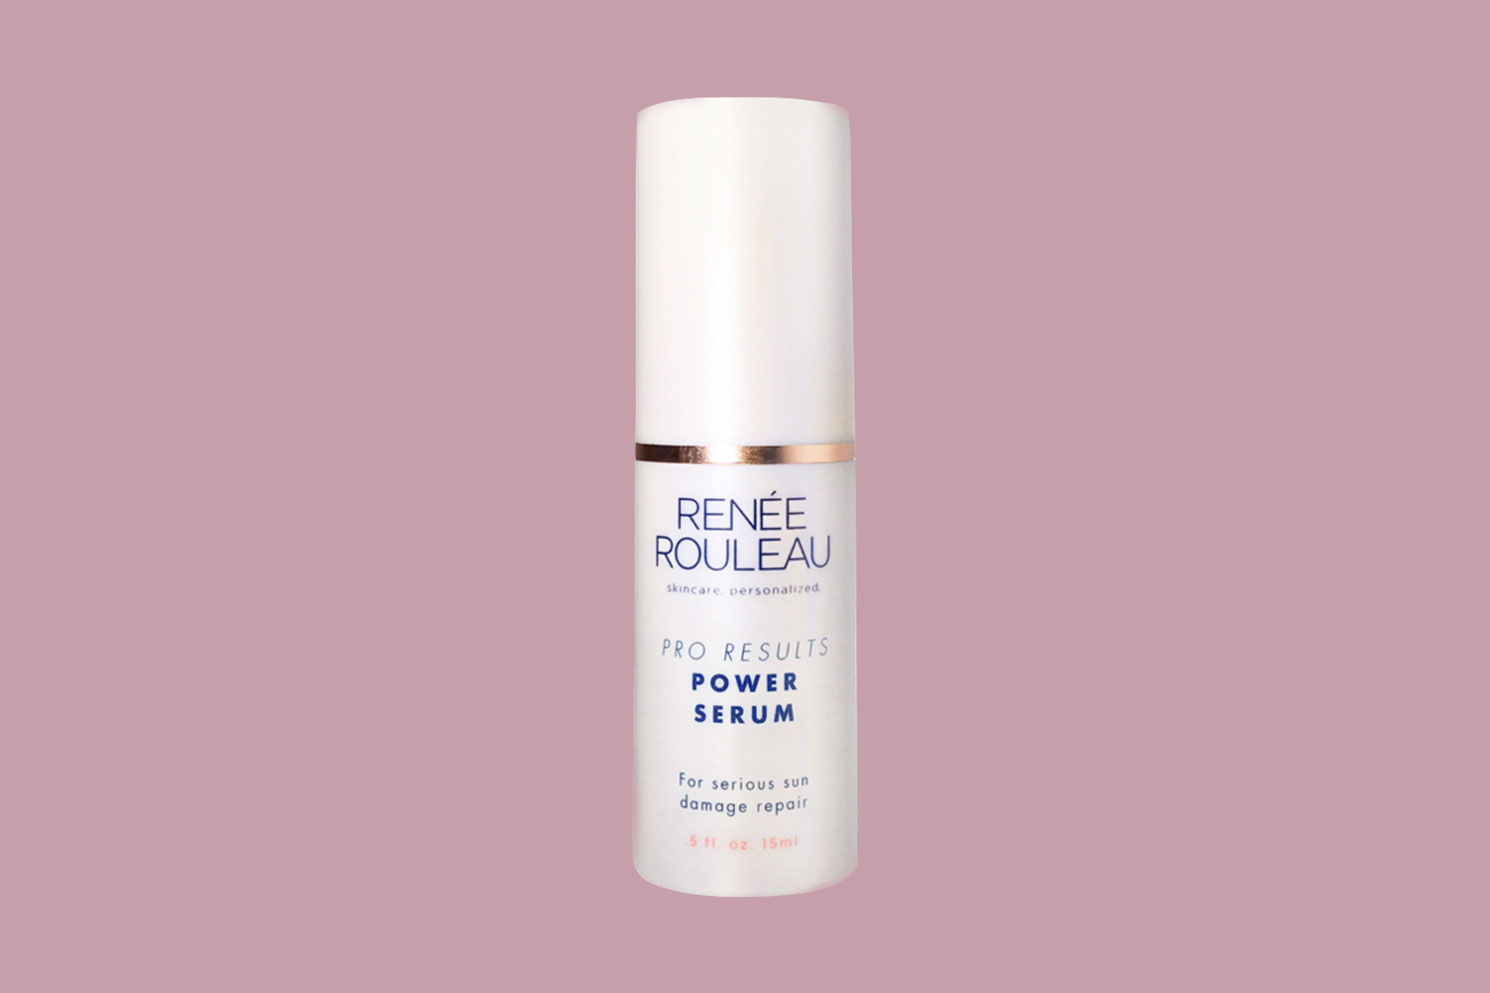 renee rouleau pro results power serum